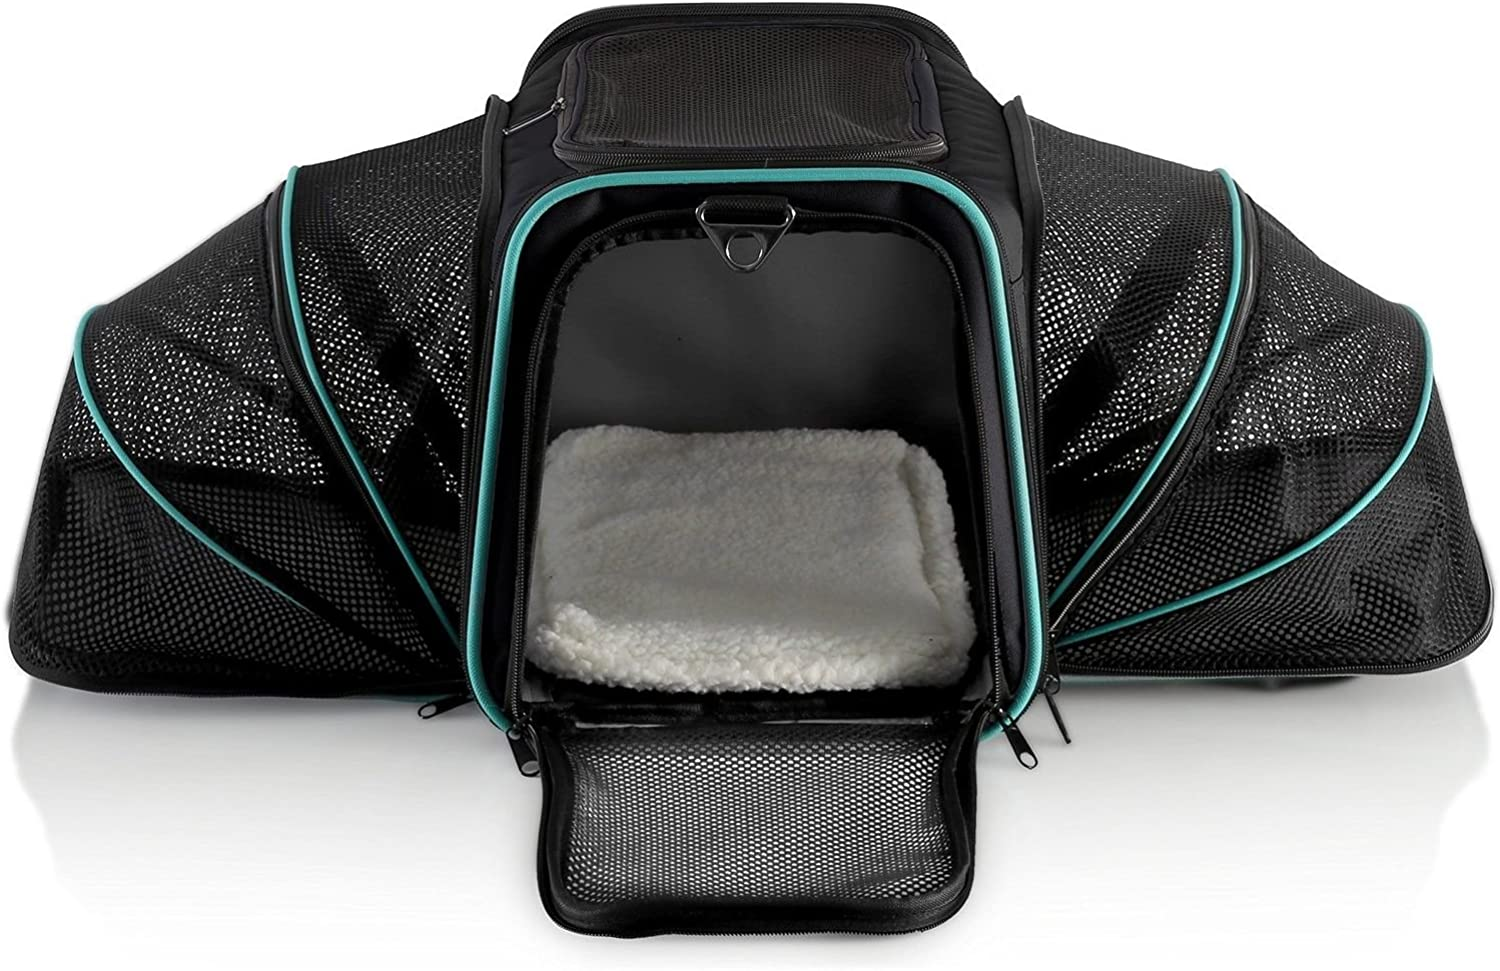 Dual Expandable Pet Carrier with Soft Sided Crate for Small Animals  Airline Approved Pet Carrier with Adjustable Shoulder Strap and Handle for Dogs Cats   Terminal Friendly Carry Bag for PetsGrey